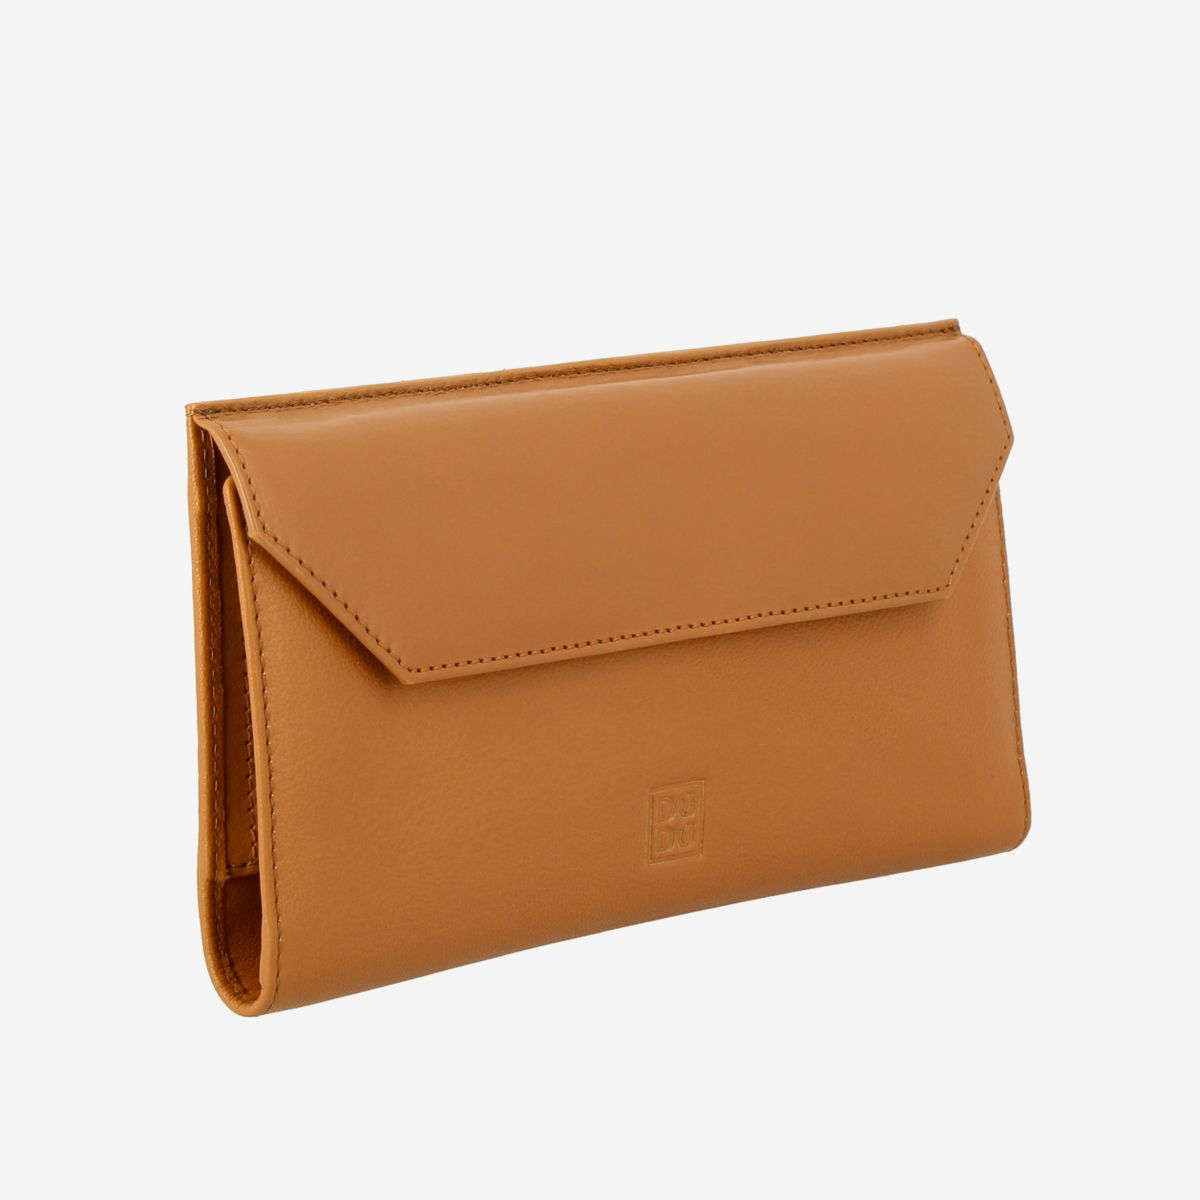 DuDu Ladies Envelope Leather Clutch Wallet Purse  - Buff